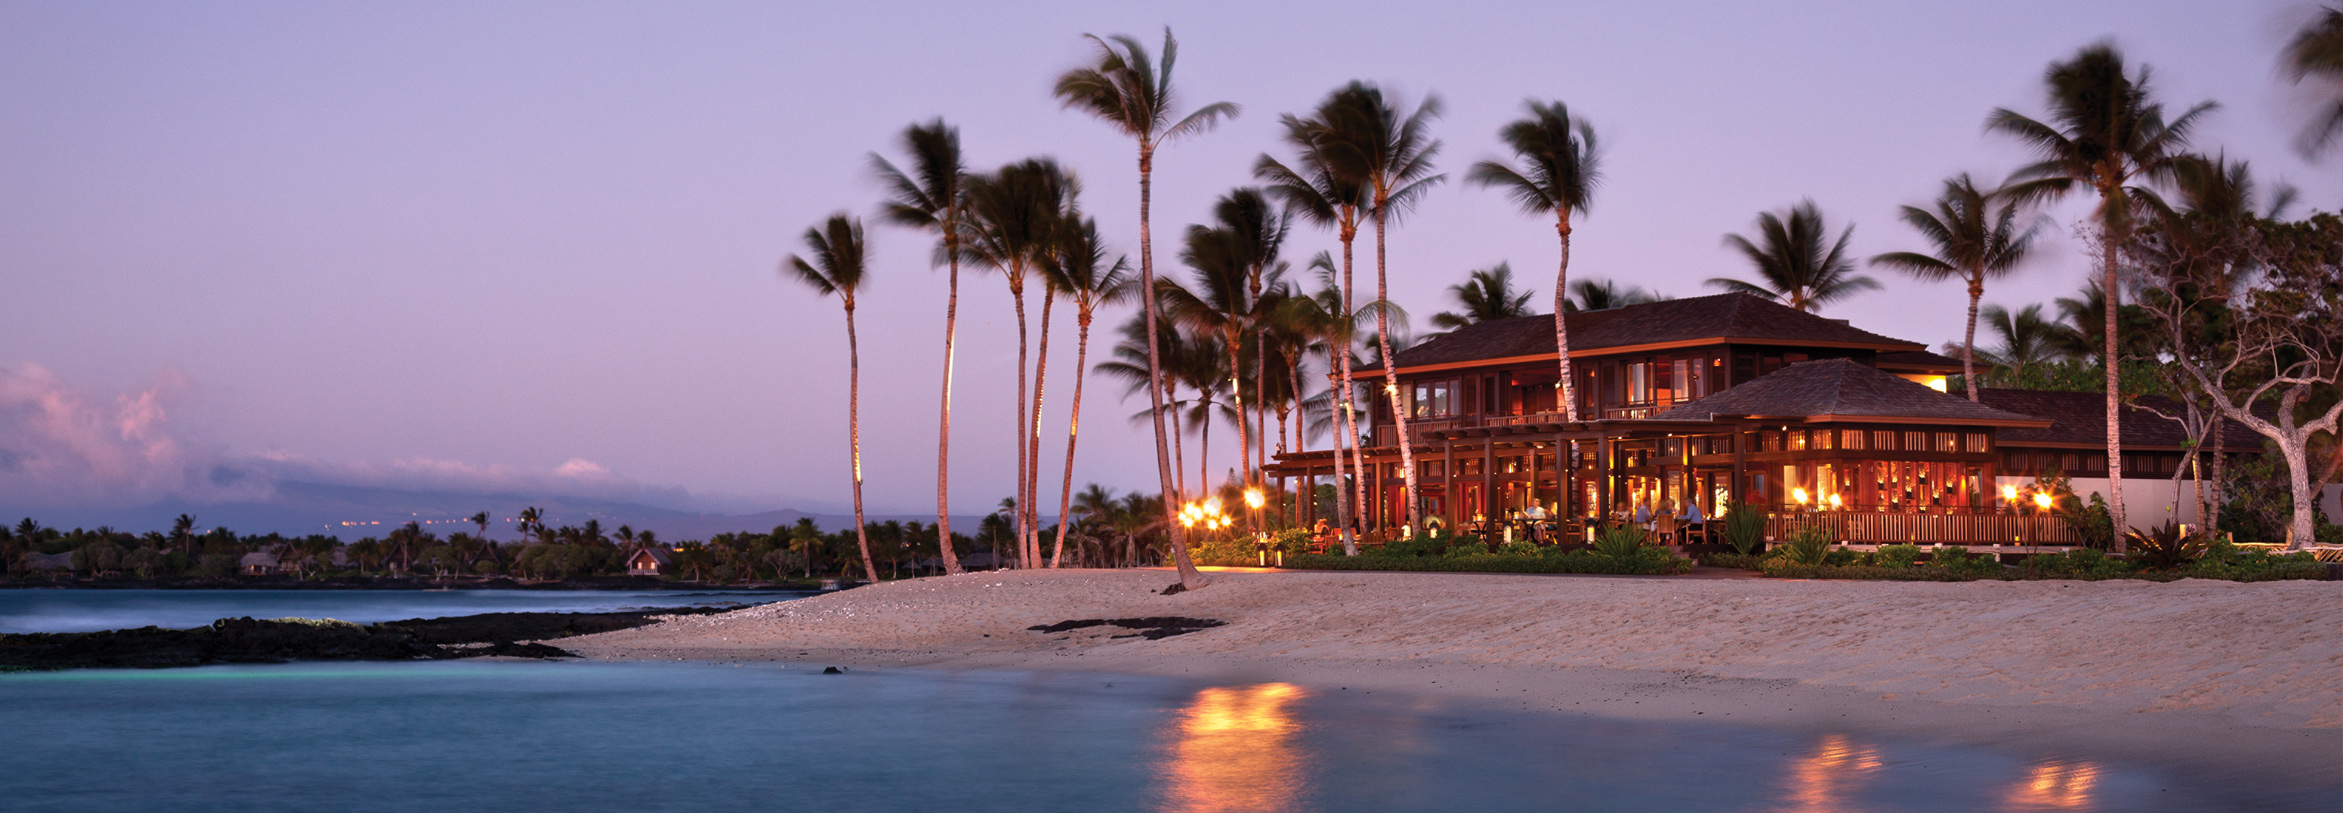 Four Seasons Hualalai - Luxury Hawaii Holiday - Ker & Downey